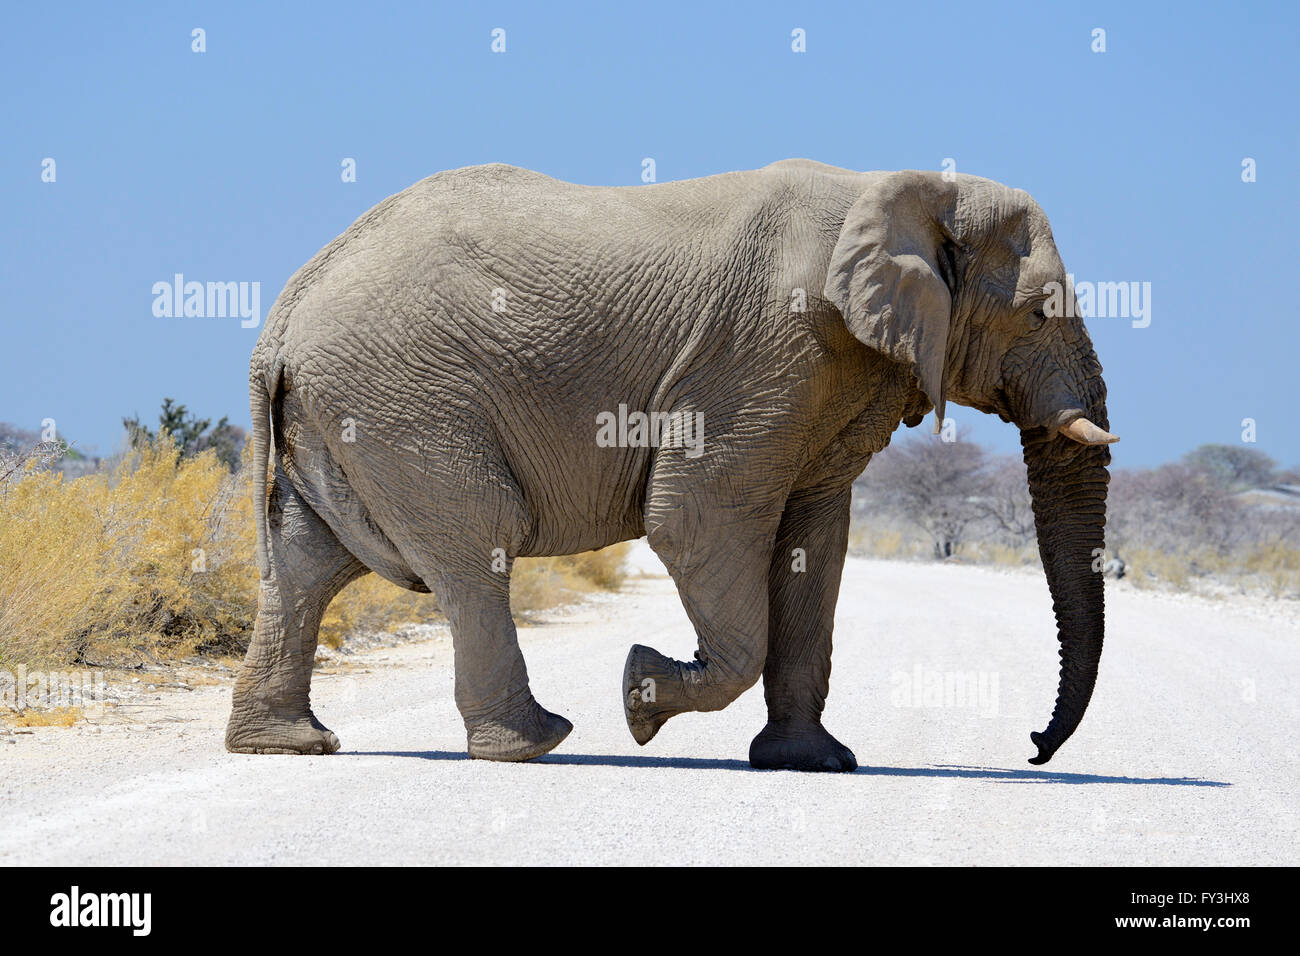 Solitary African bull elephant (Loxodonta africana) crossing unpaved road in Etosha National Park, Namibia - Stock Image